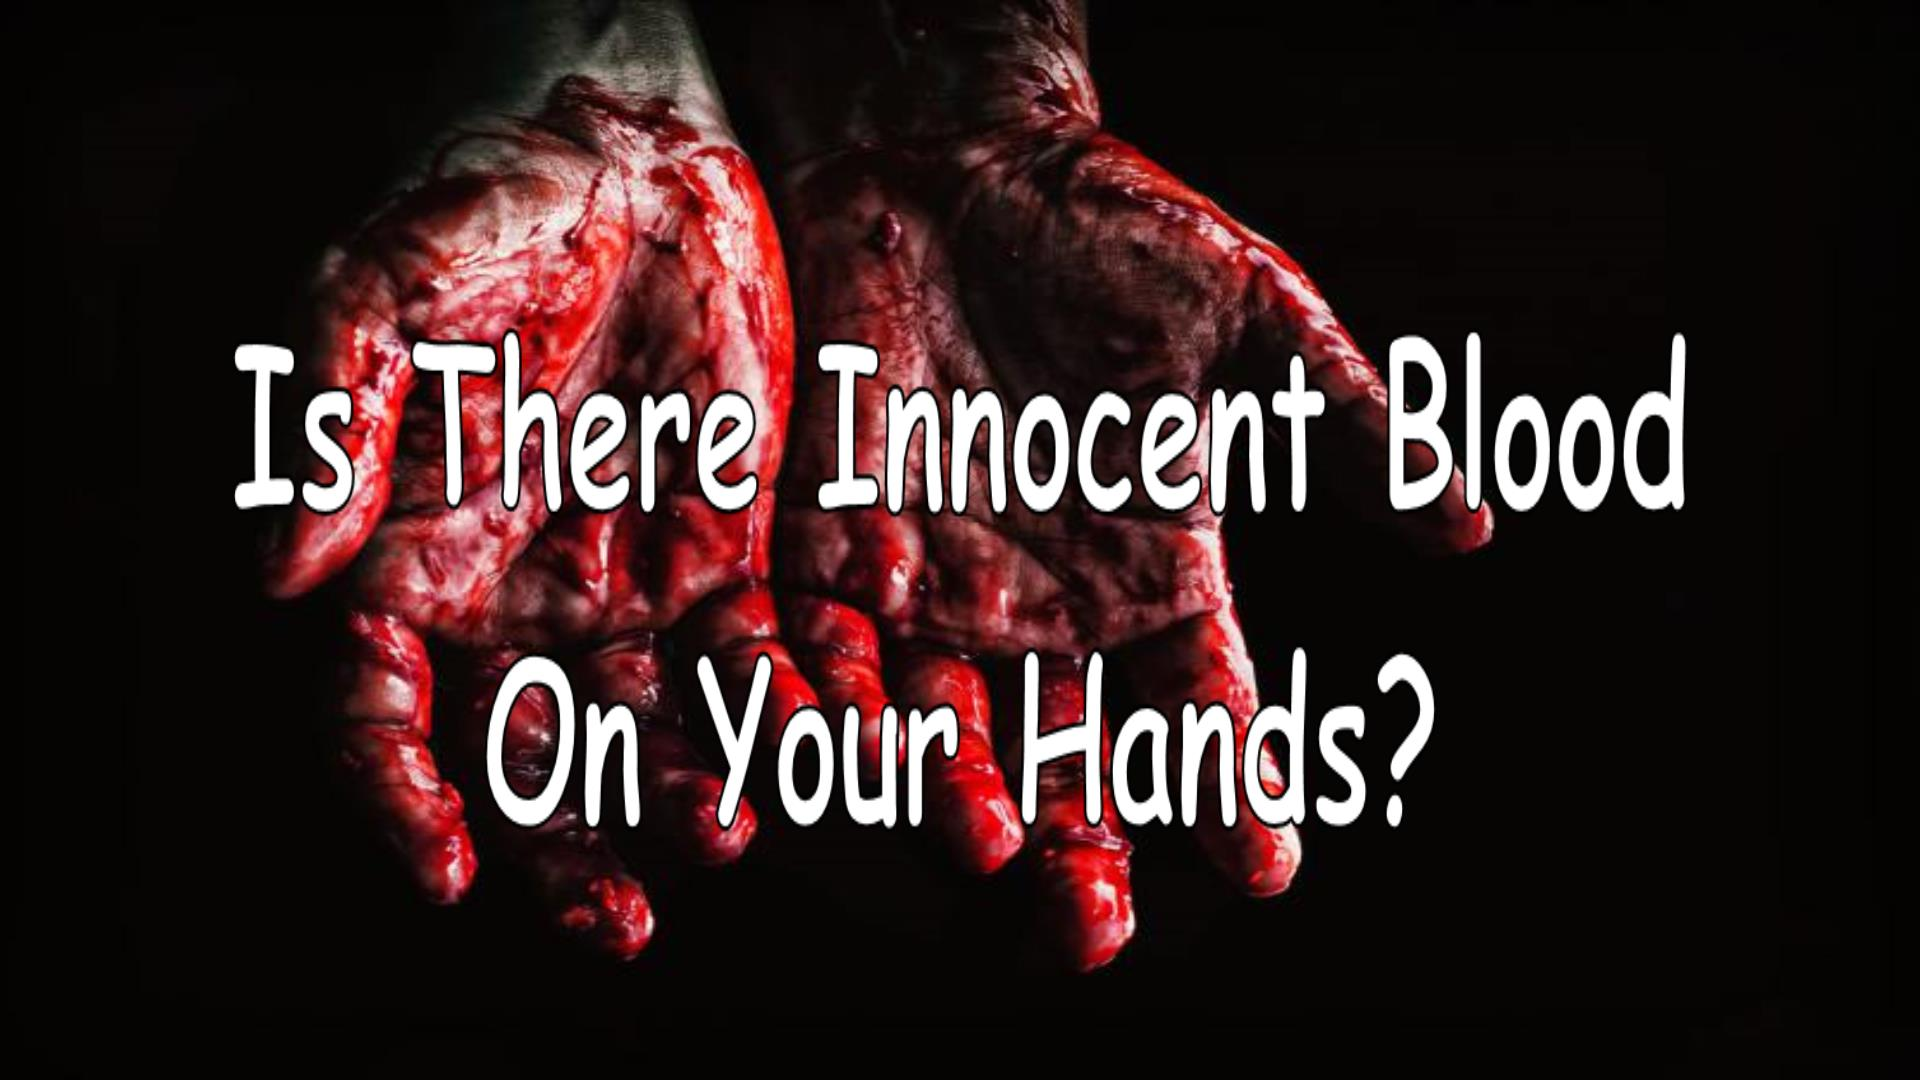 Is There Innocent  Blood On Your Hands?